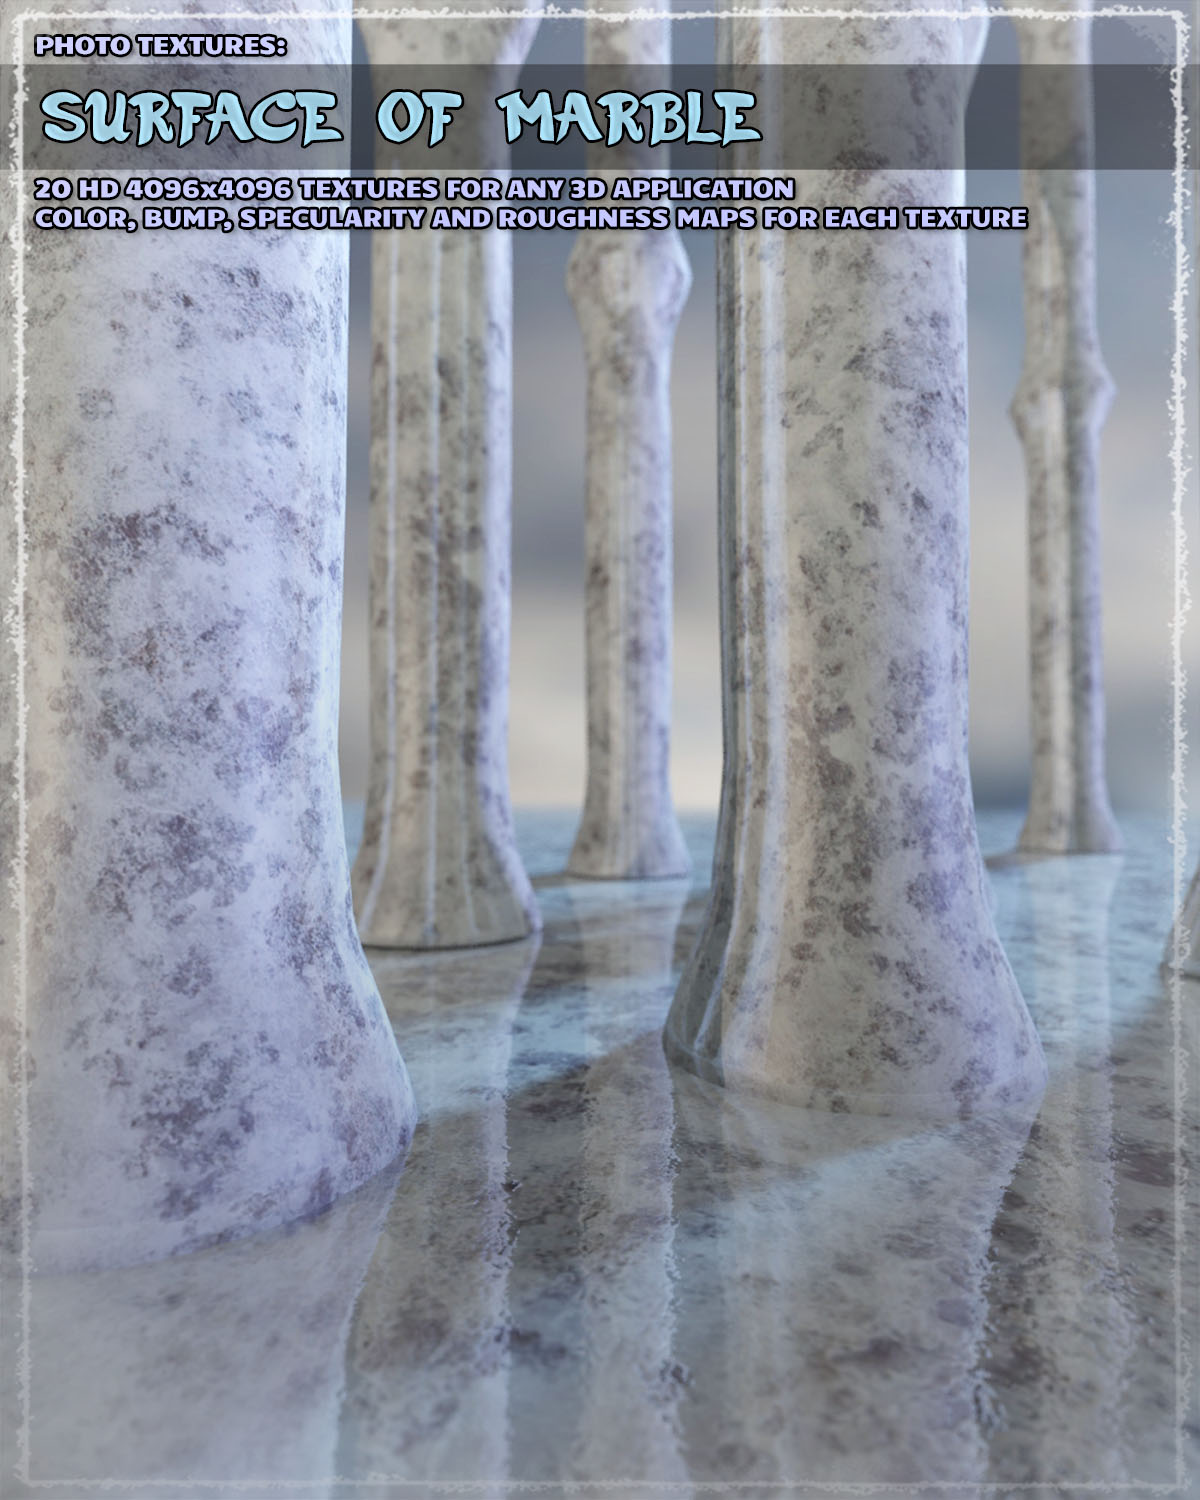 Photo Textures: Surface of Marble